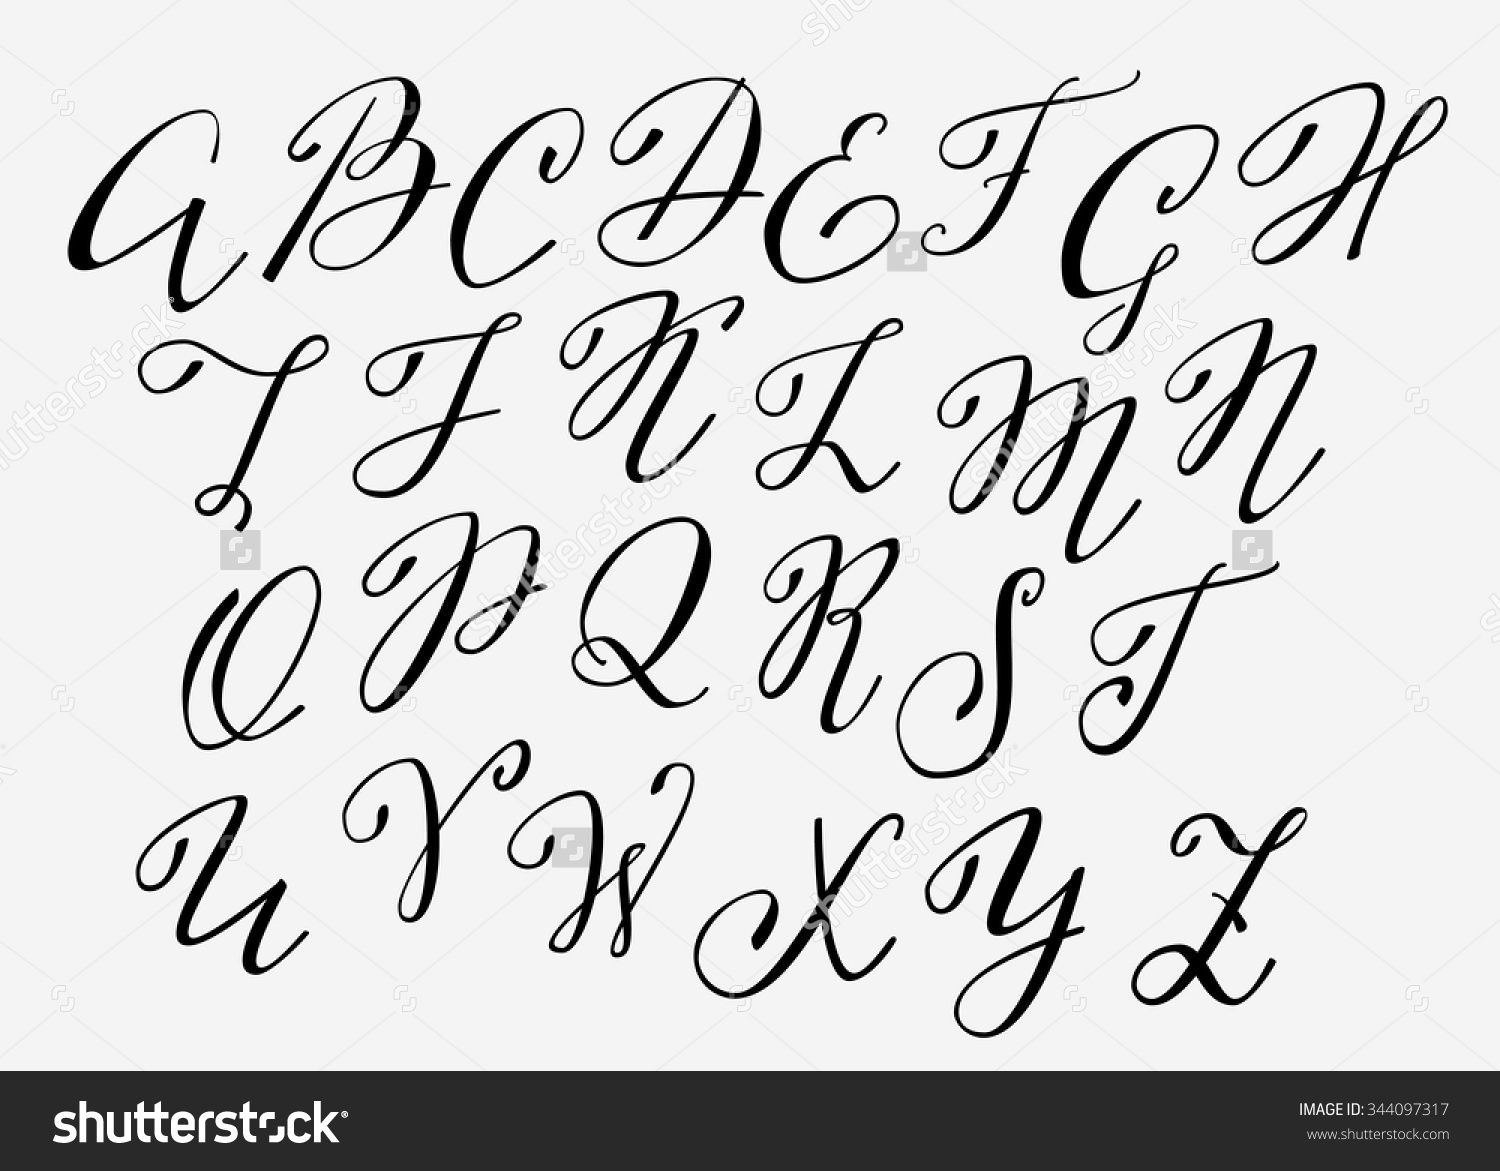 Stock vector handwritten calligraphy flourish font capital